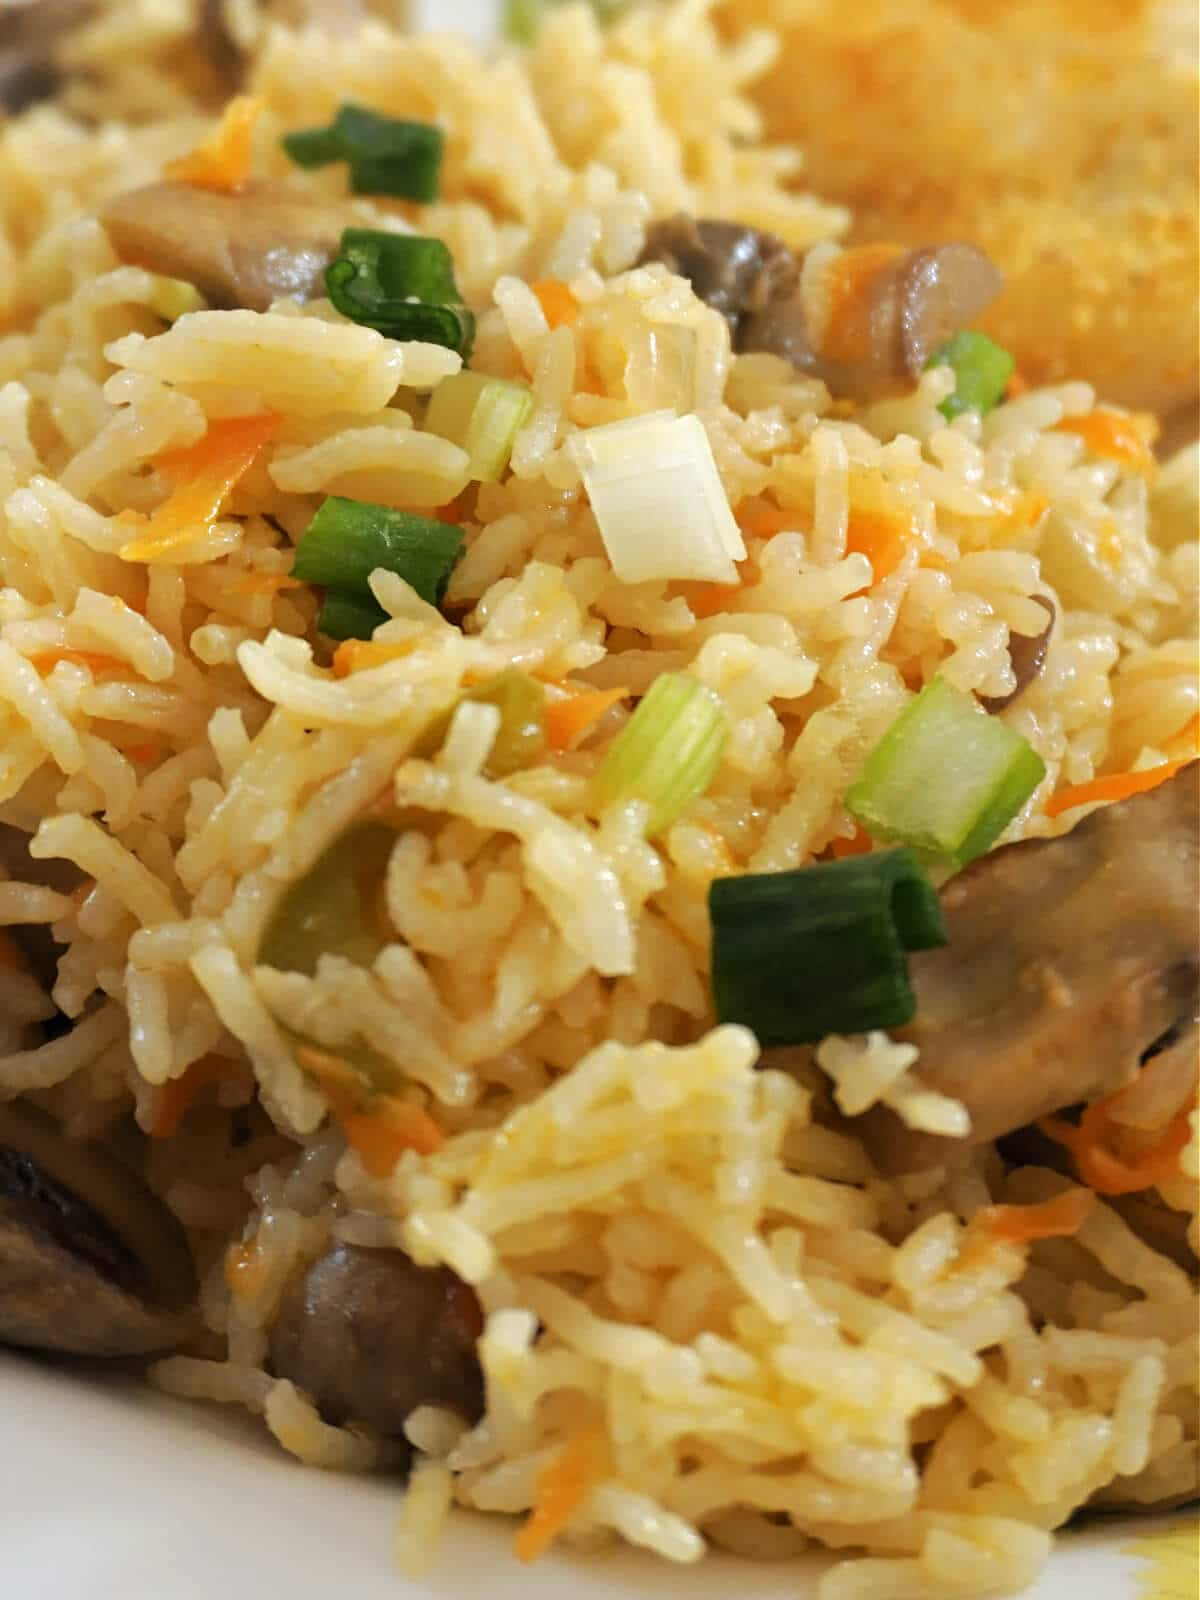 Close-up shot of vegetable rice